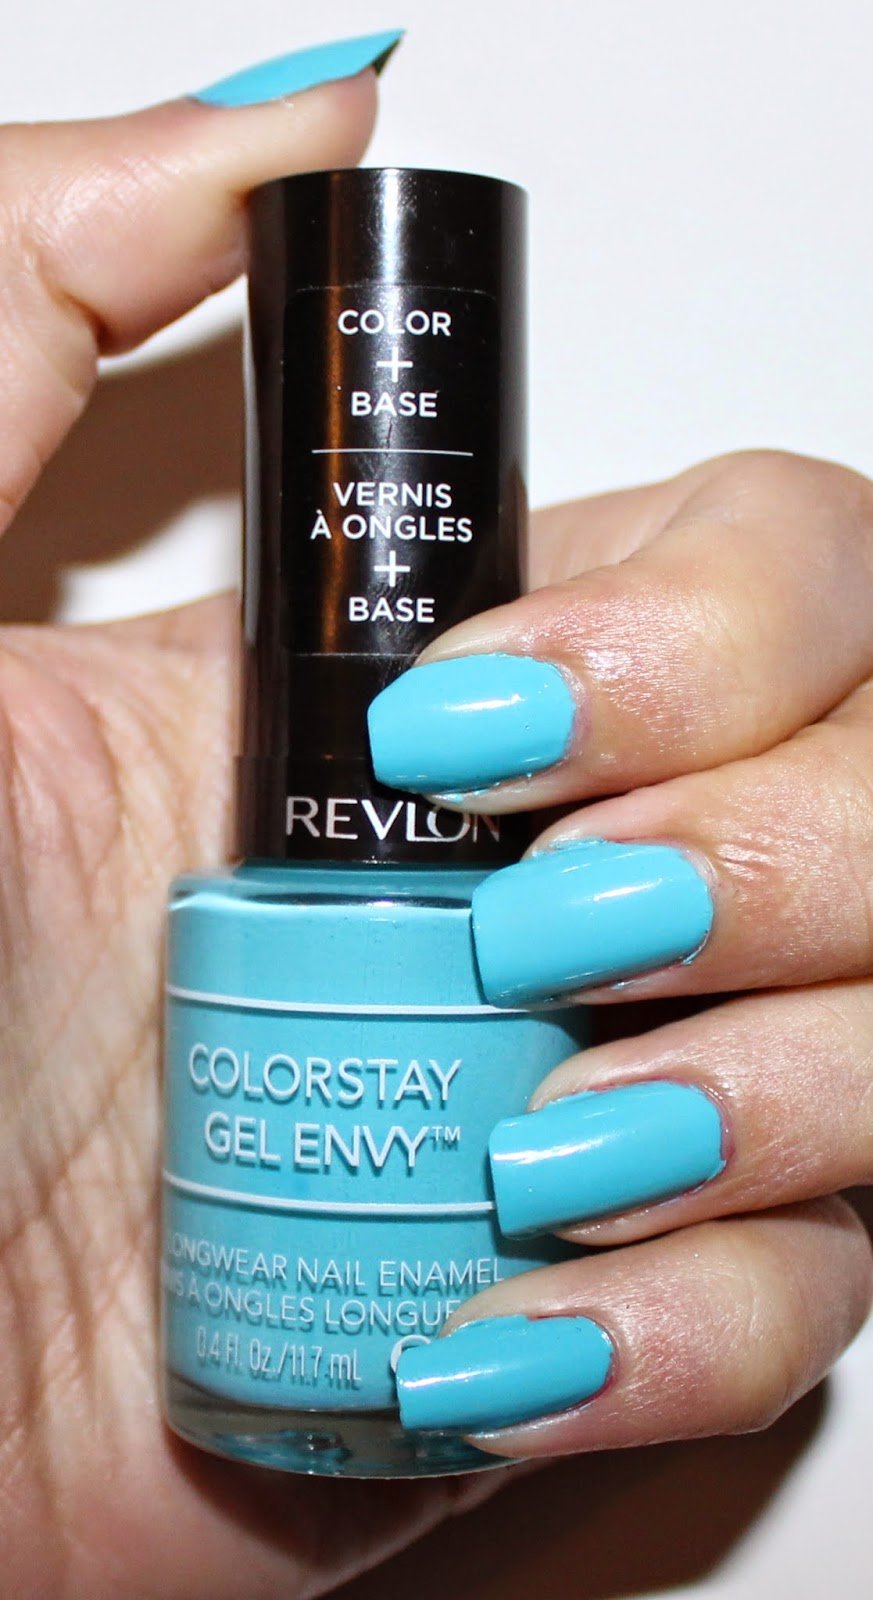 Revlon ColorStay Gel Envy Longwear Nail Enamel in Full House